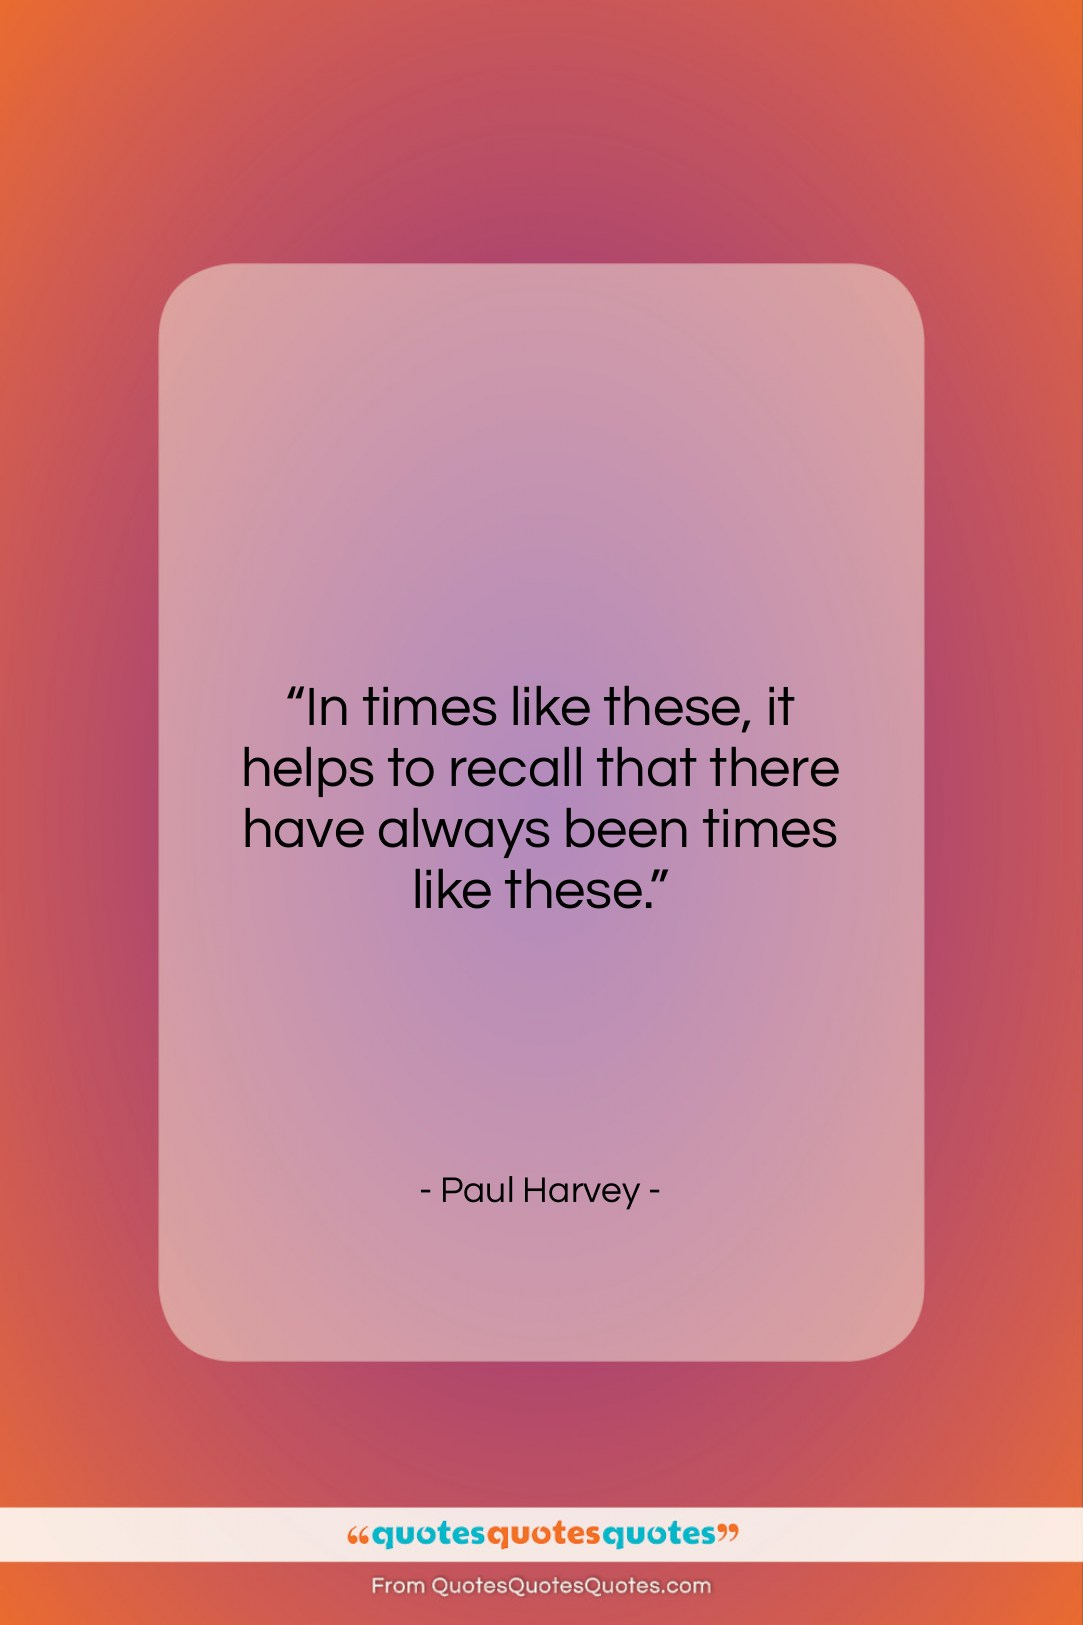 """Paul Harvey quote: """"In times like these, it helps to…""""- at QuotesQuotesQuotes.com"""